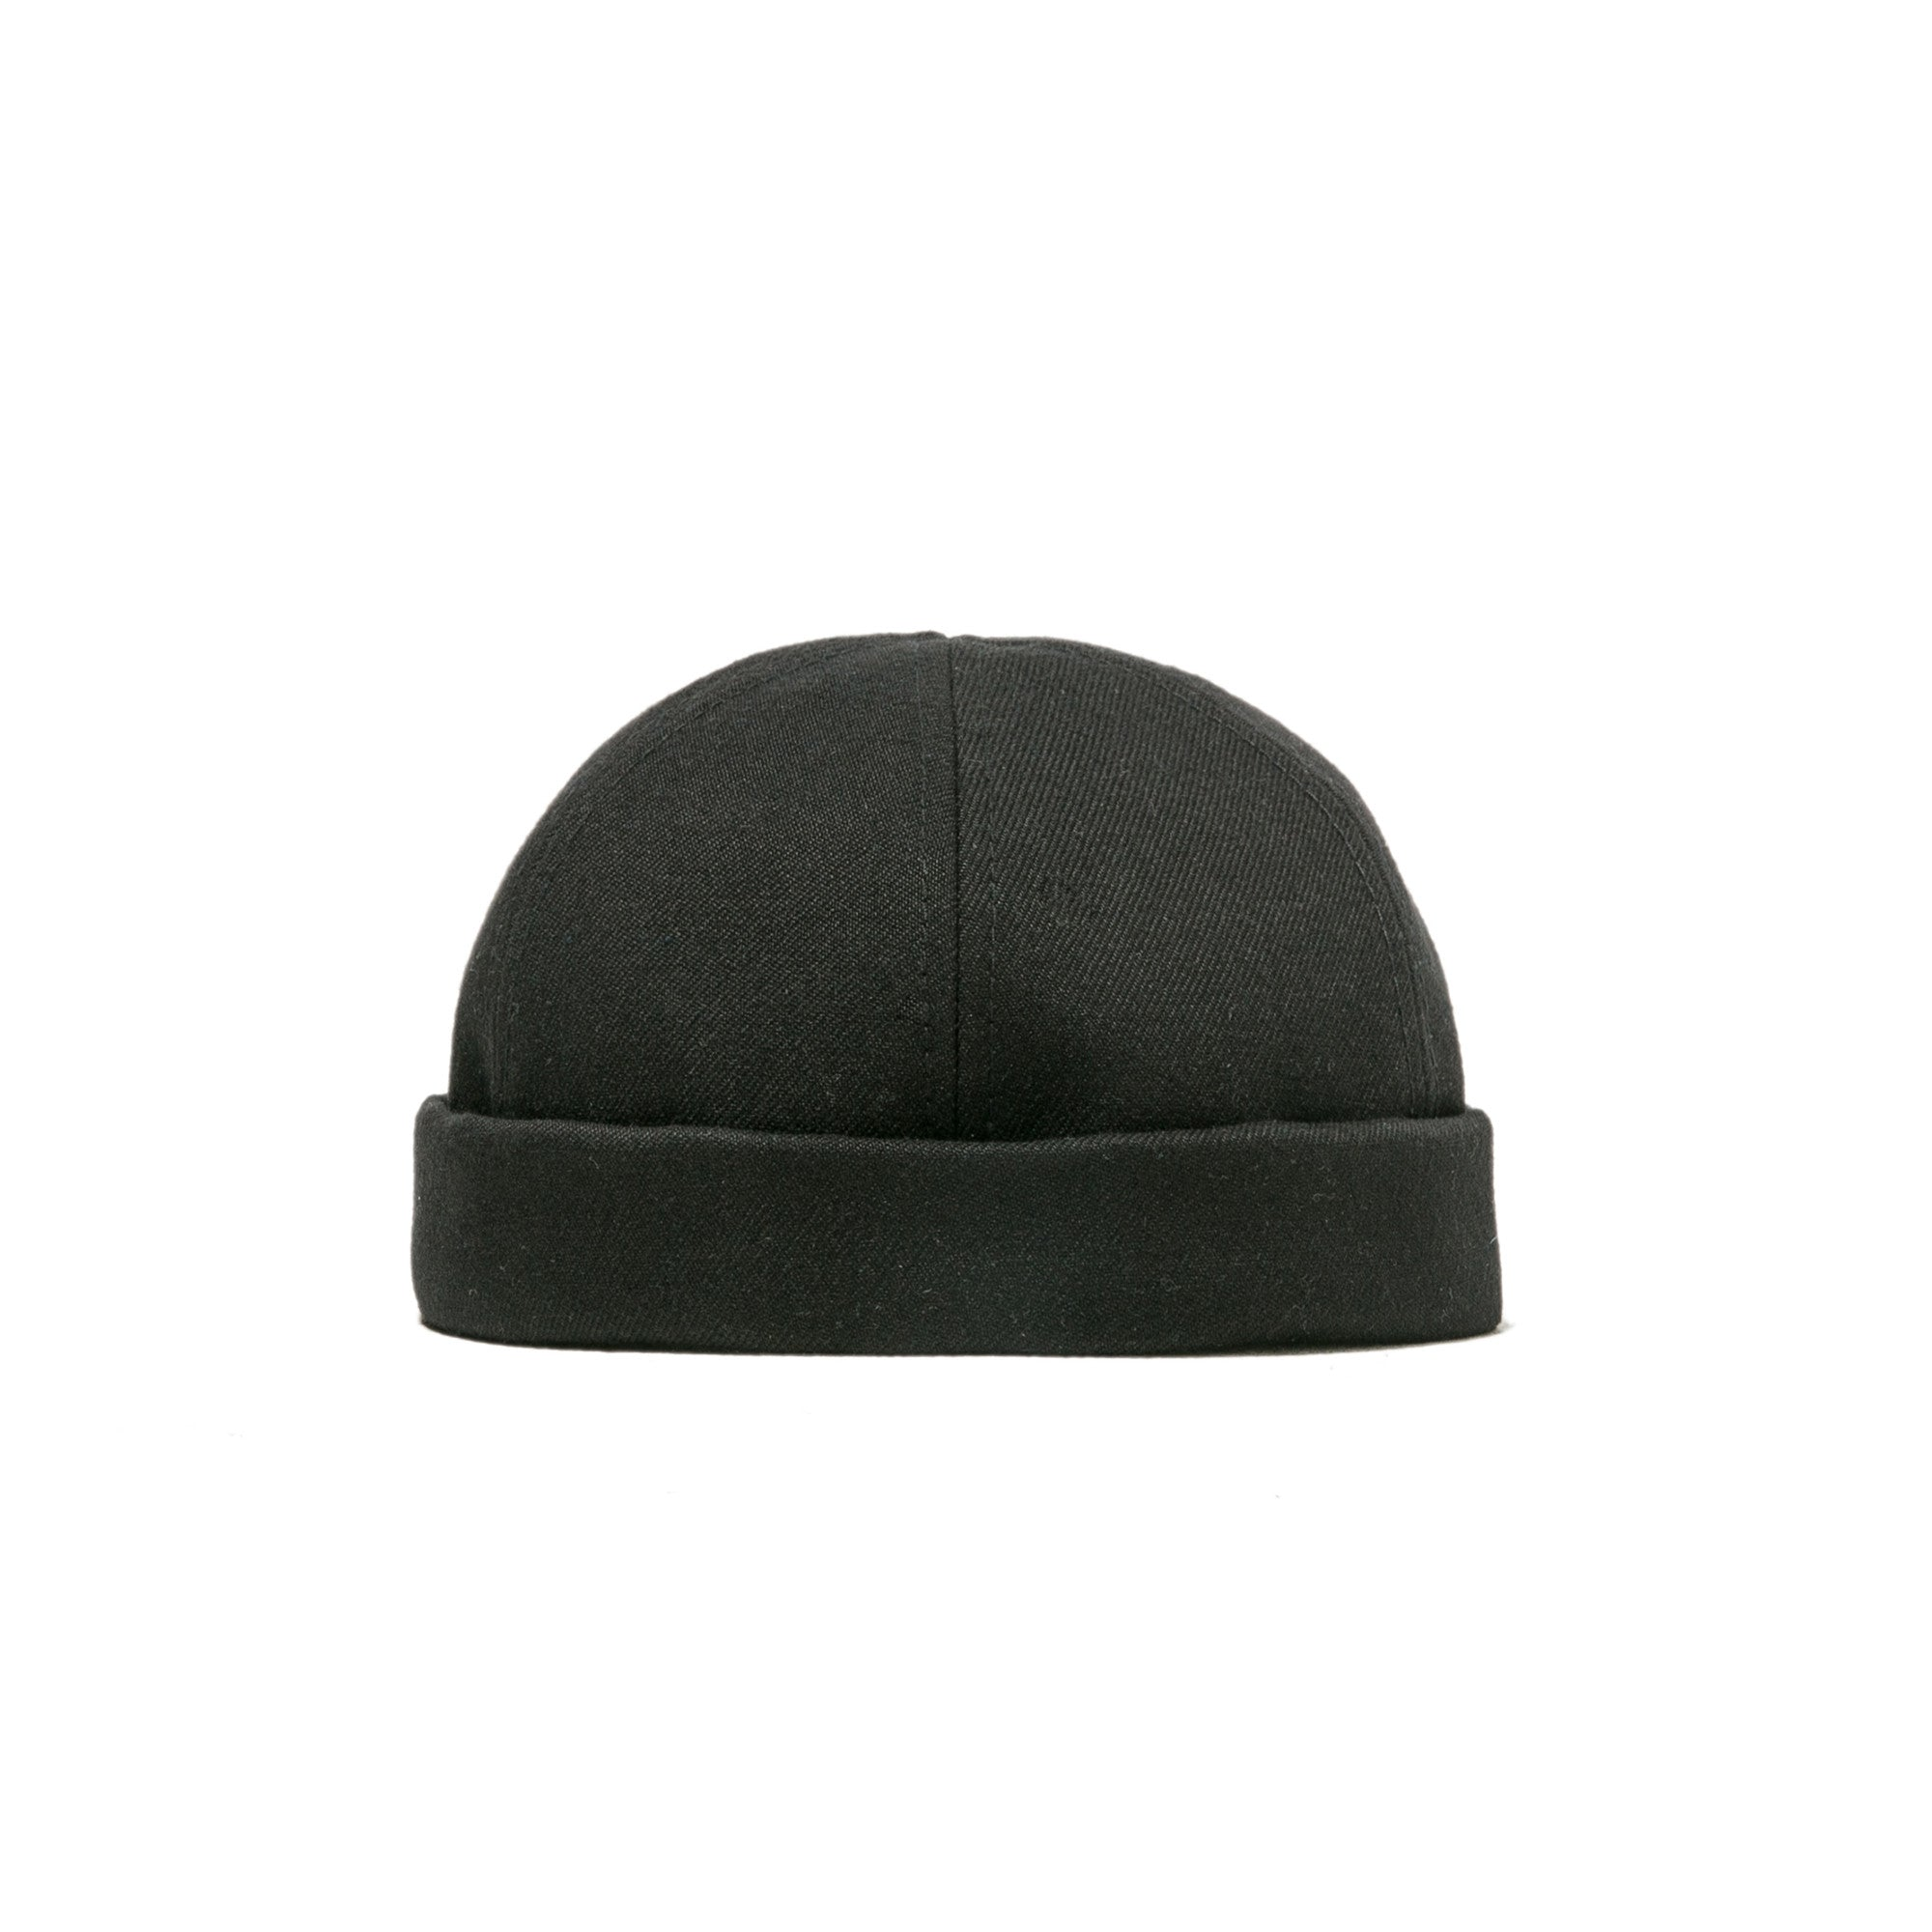 Addisu Roll Cap - Black